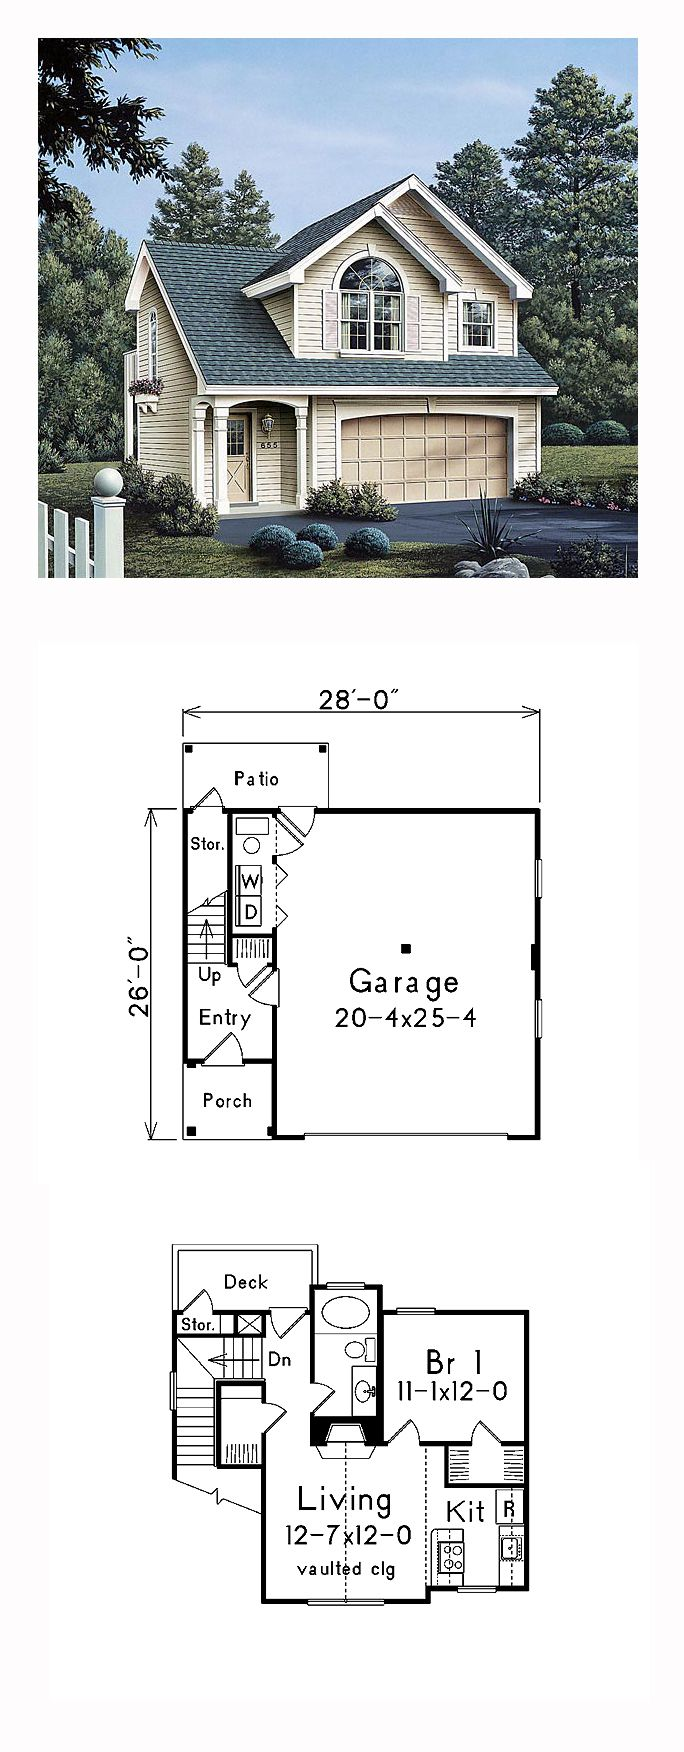 Garage Apartment Plan 86903 | Dimensions: 28u0027x26u0027, Bedrooms: 1,